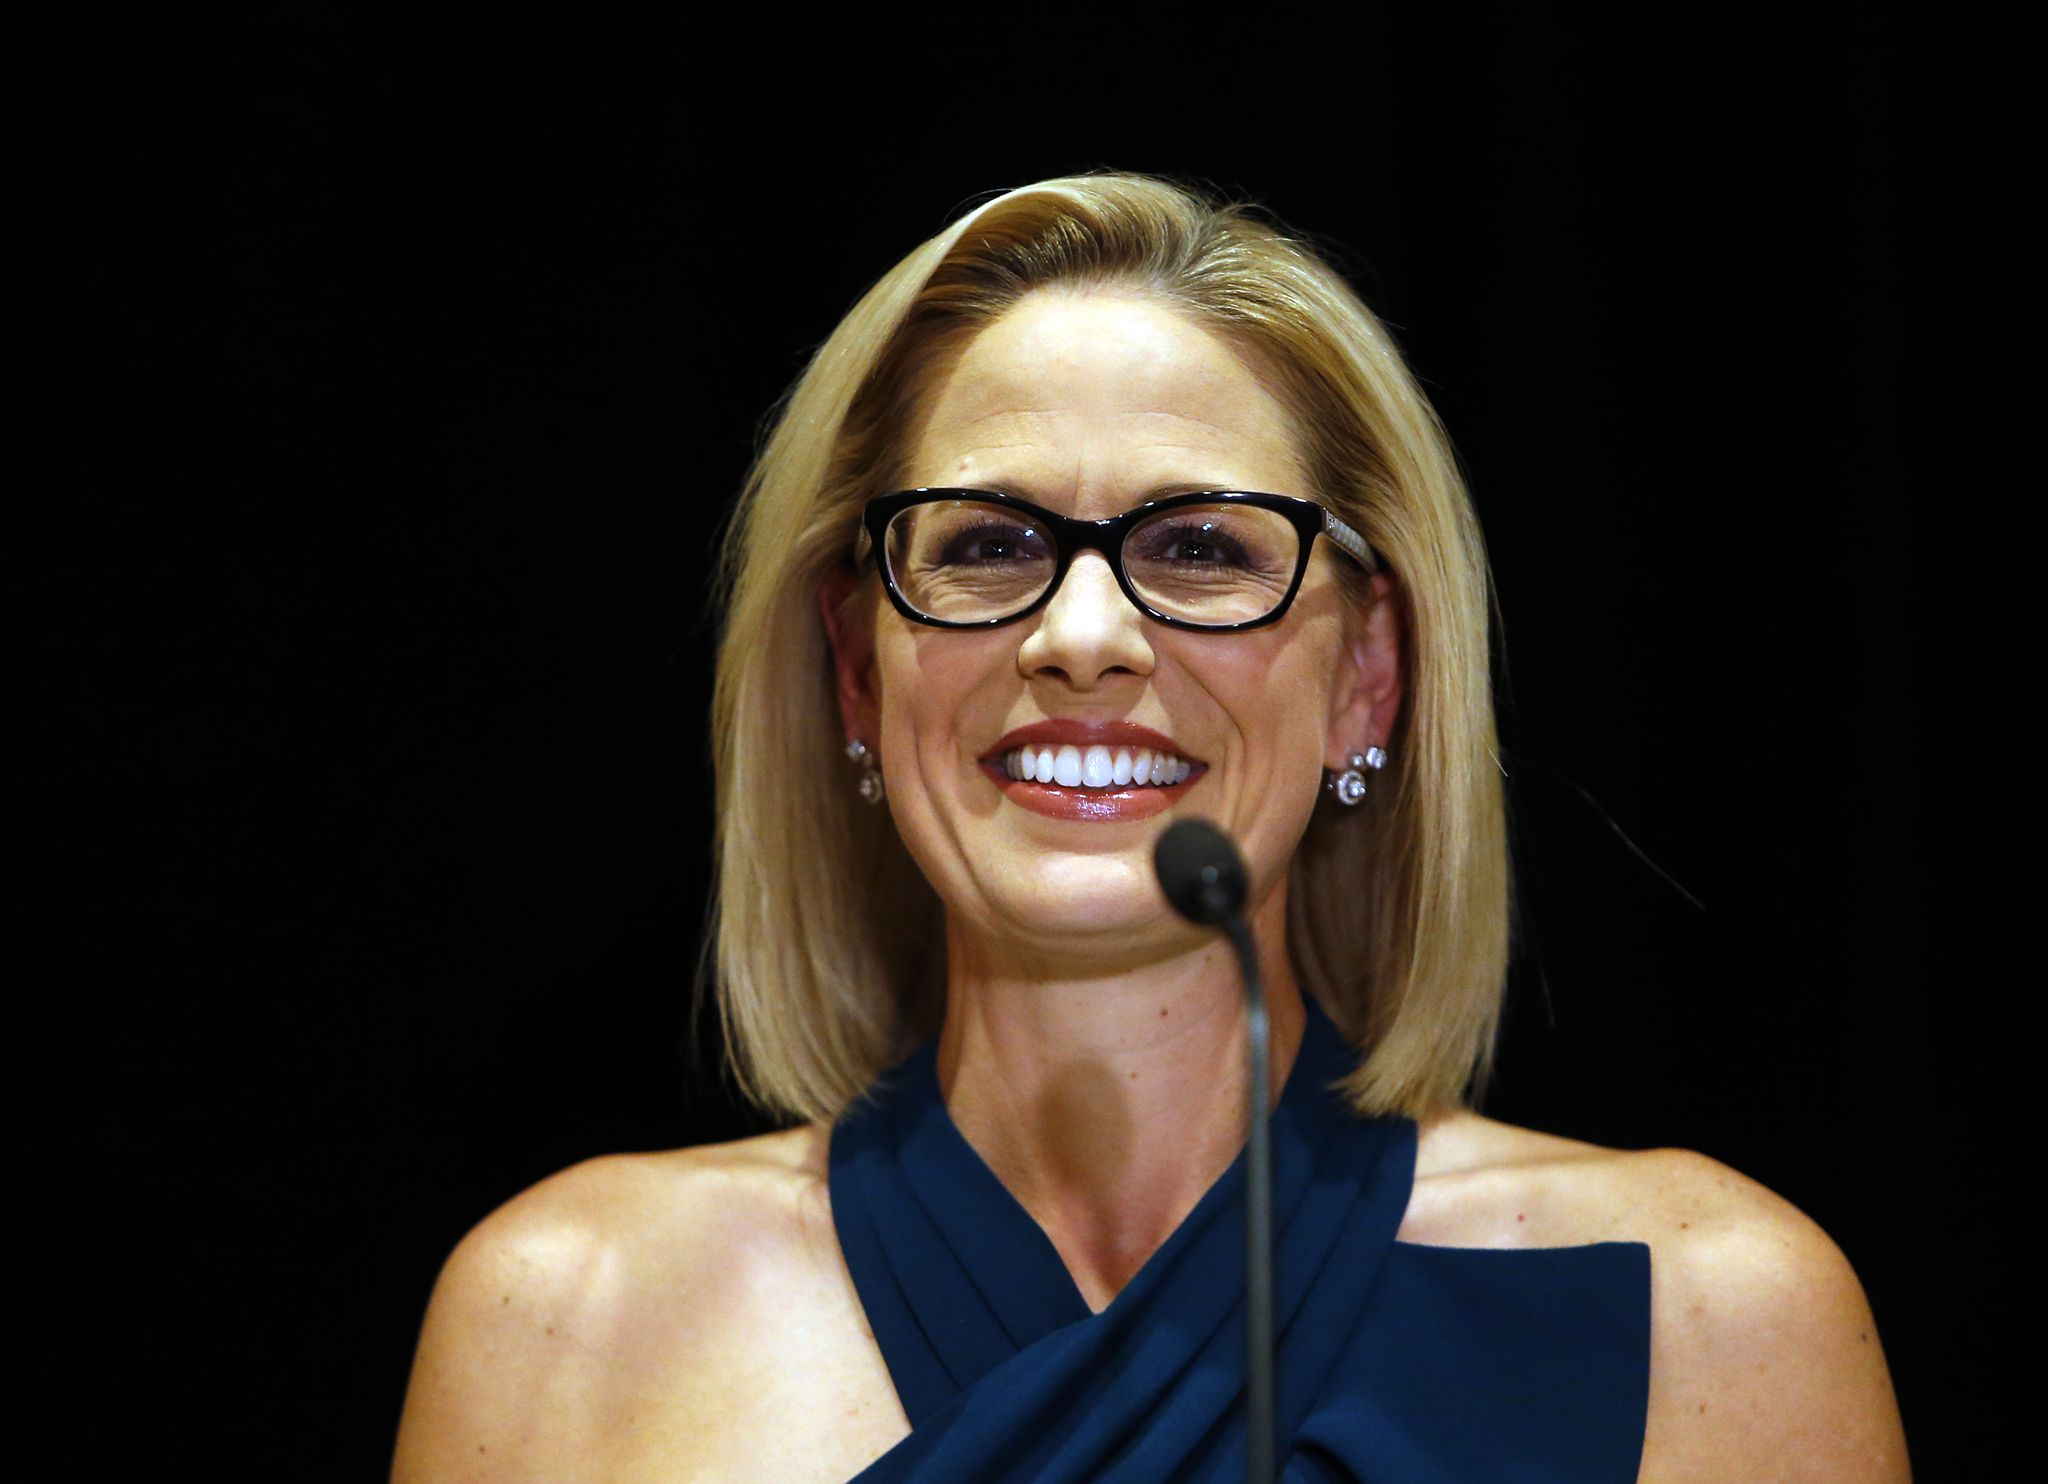 Jeff Flake congratulates Krysten Sinema on winning his Senate seat in Arizona